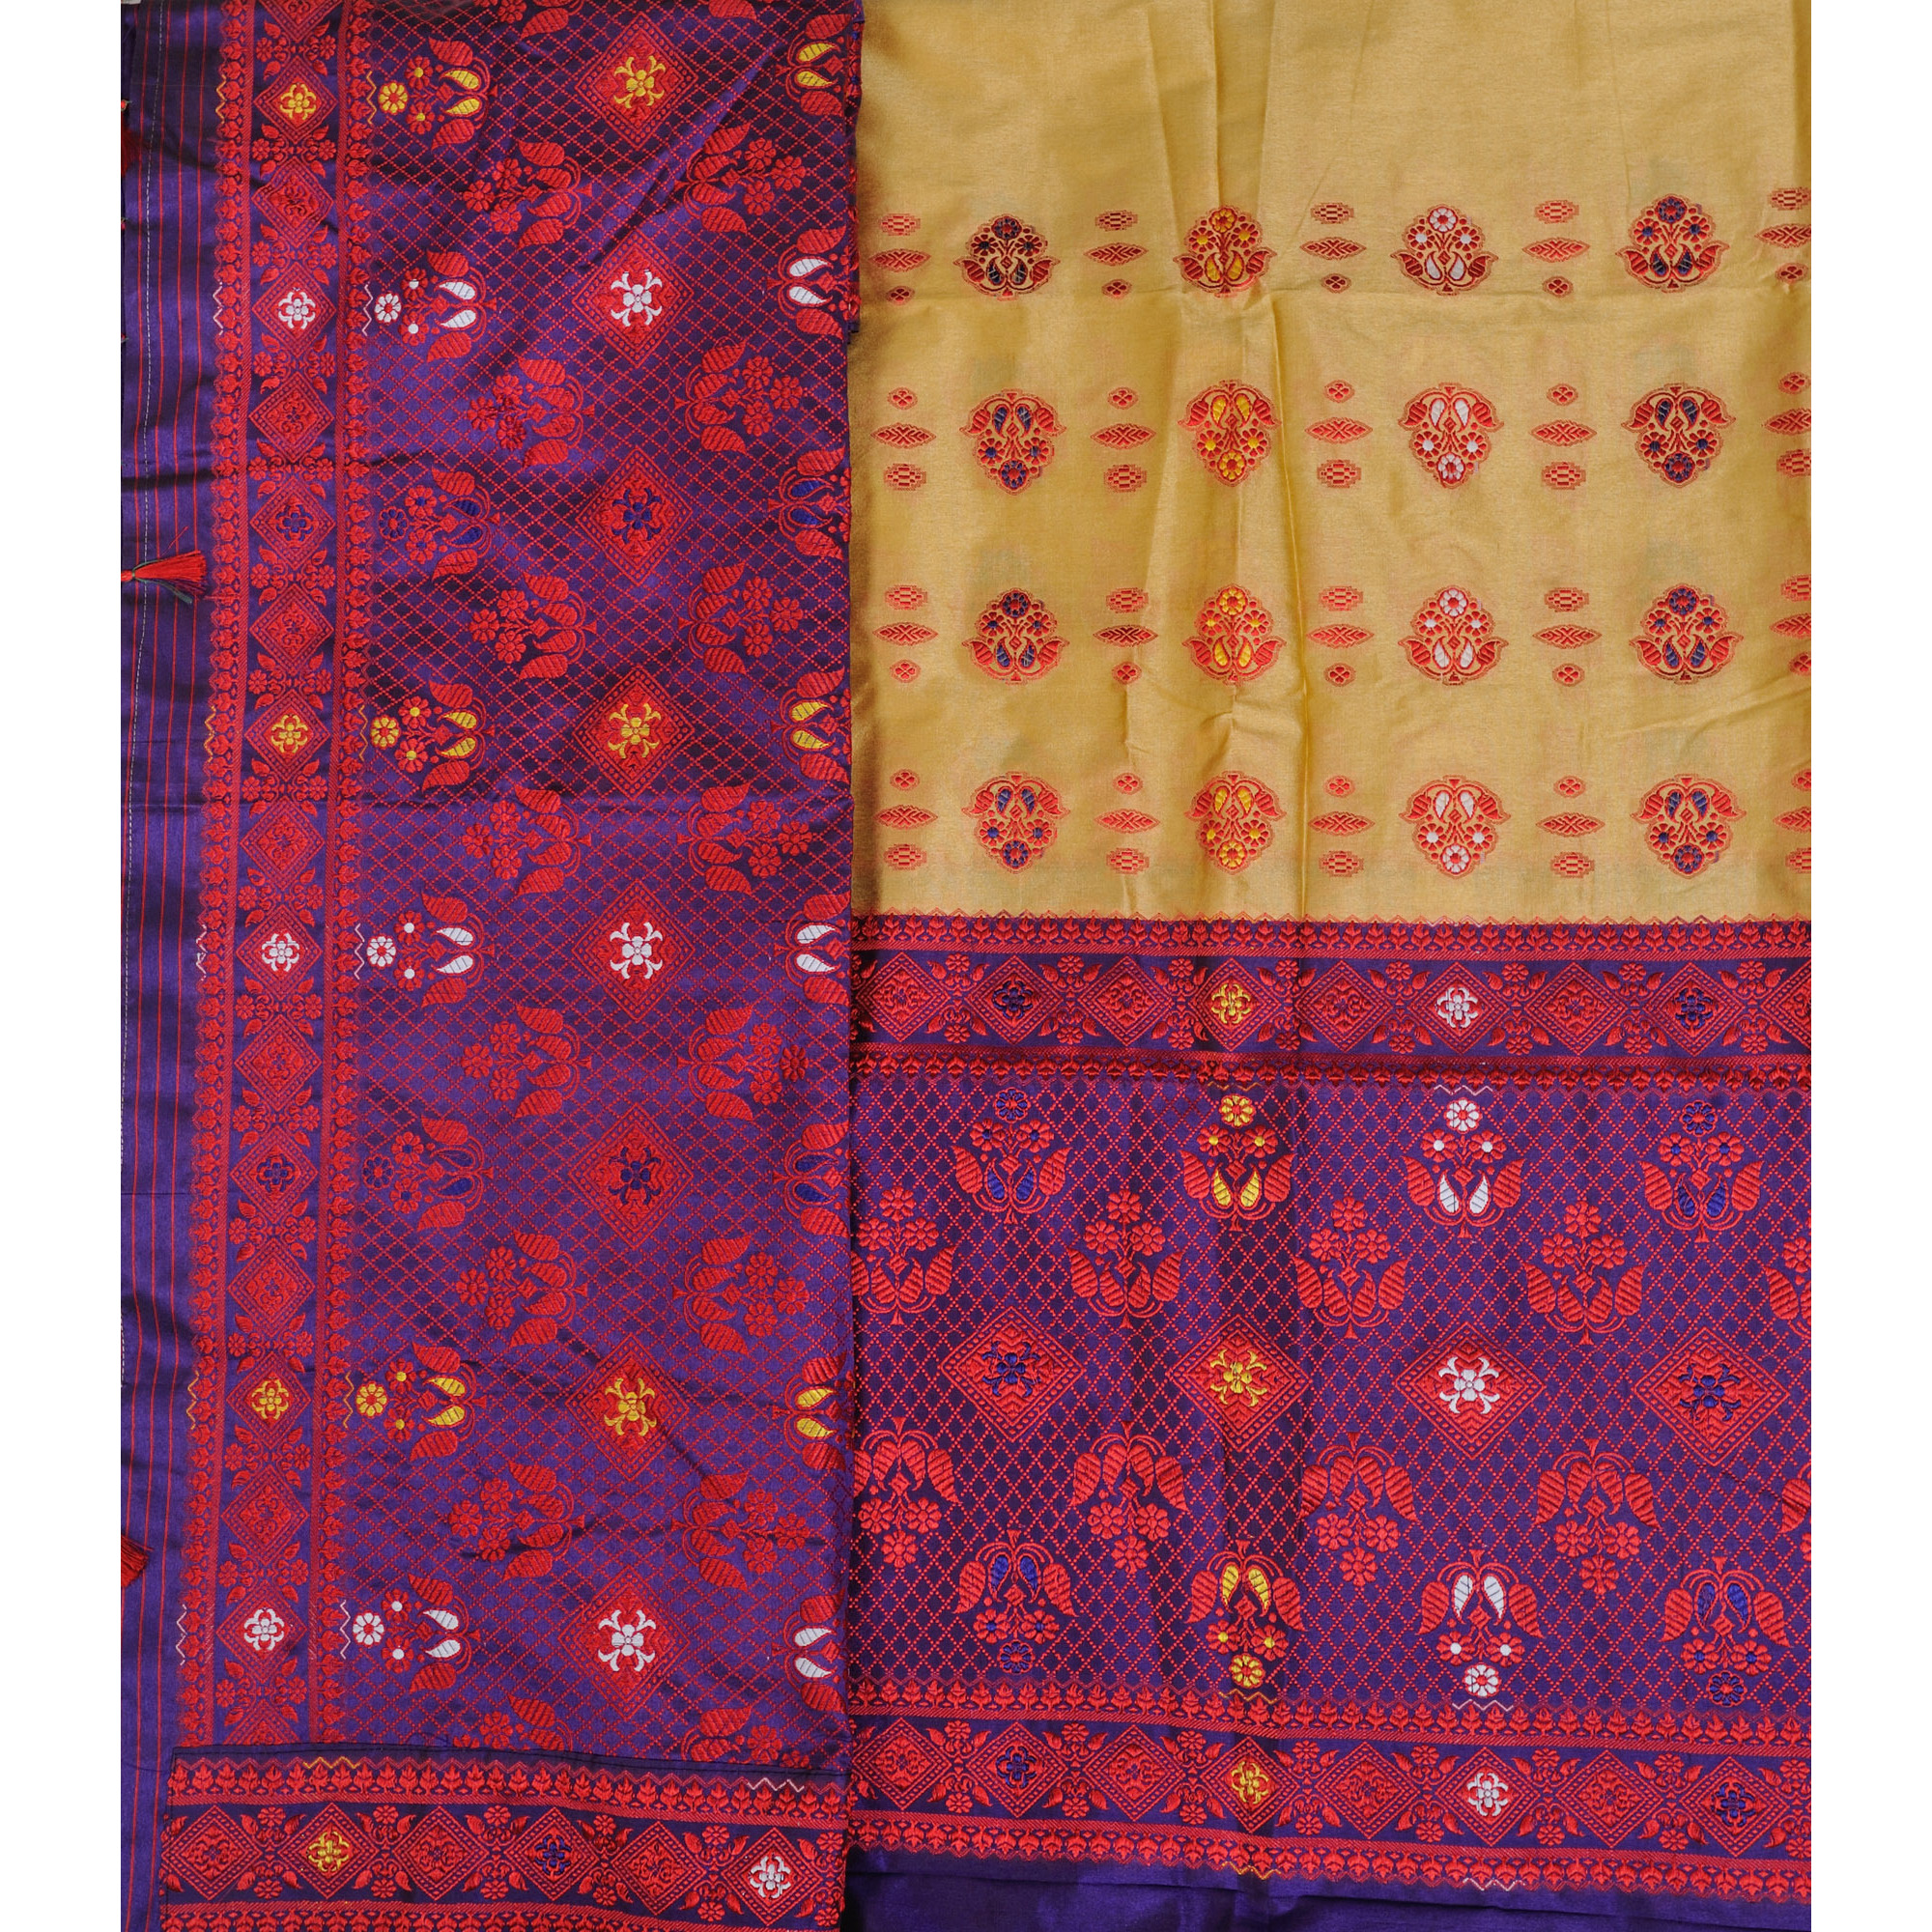 Italian-Straw and Purple Suit Fabric with Dupatta from Assam with Woven Motifs